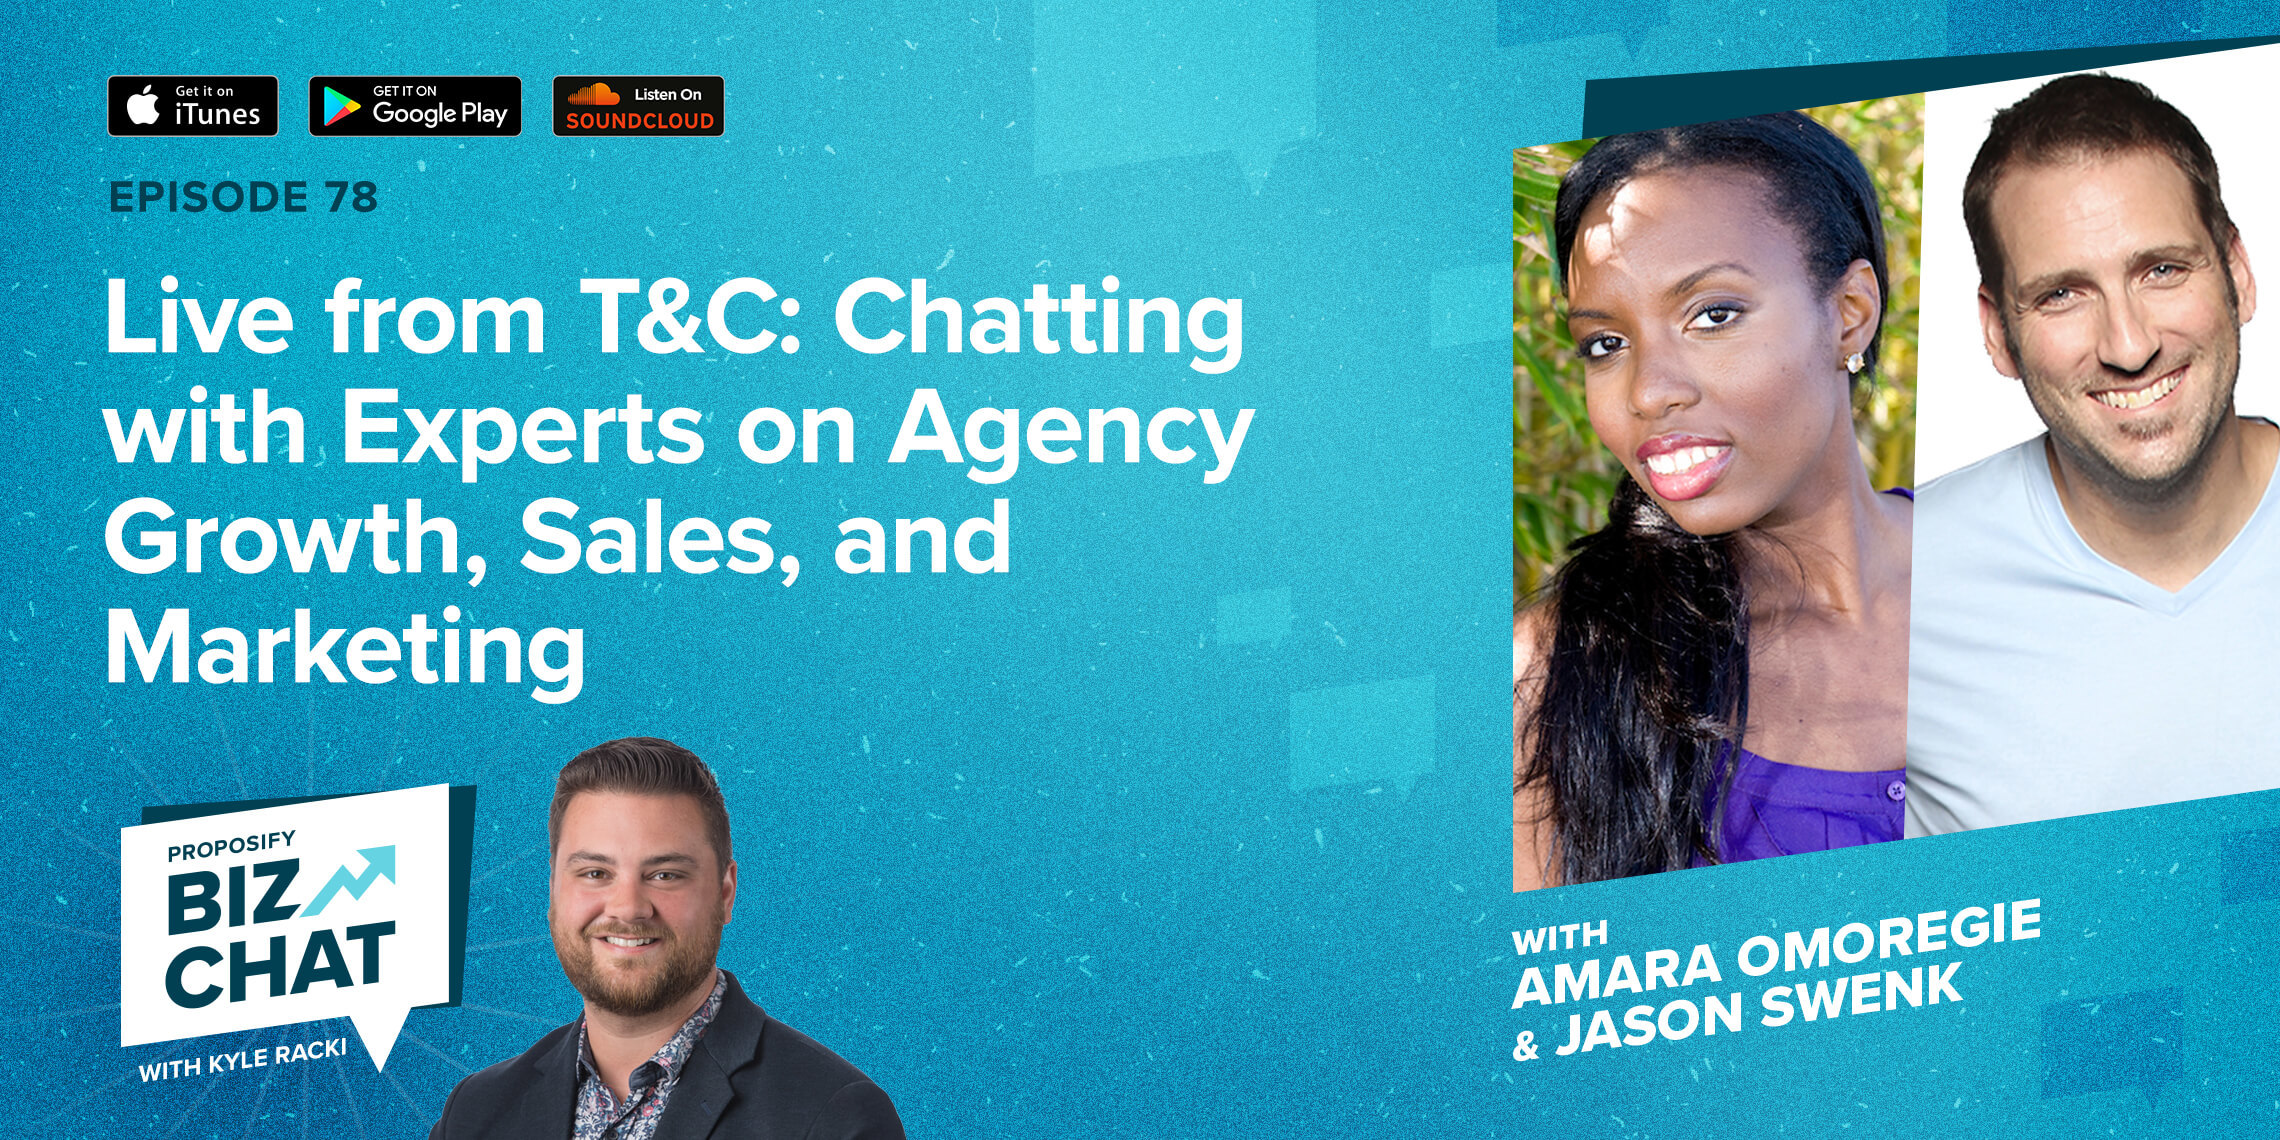 Live from T&C: Chatting with Experts on Agency Growth, Sales, and Marketing